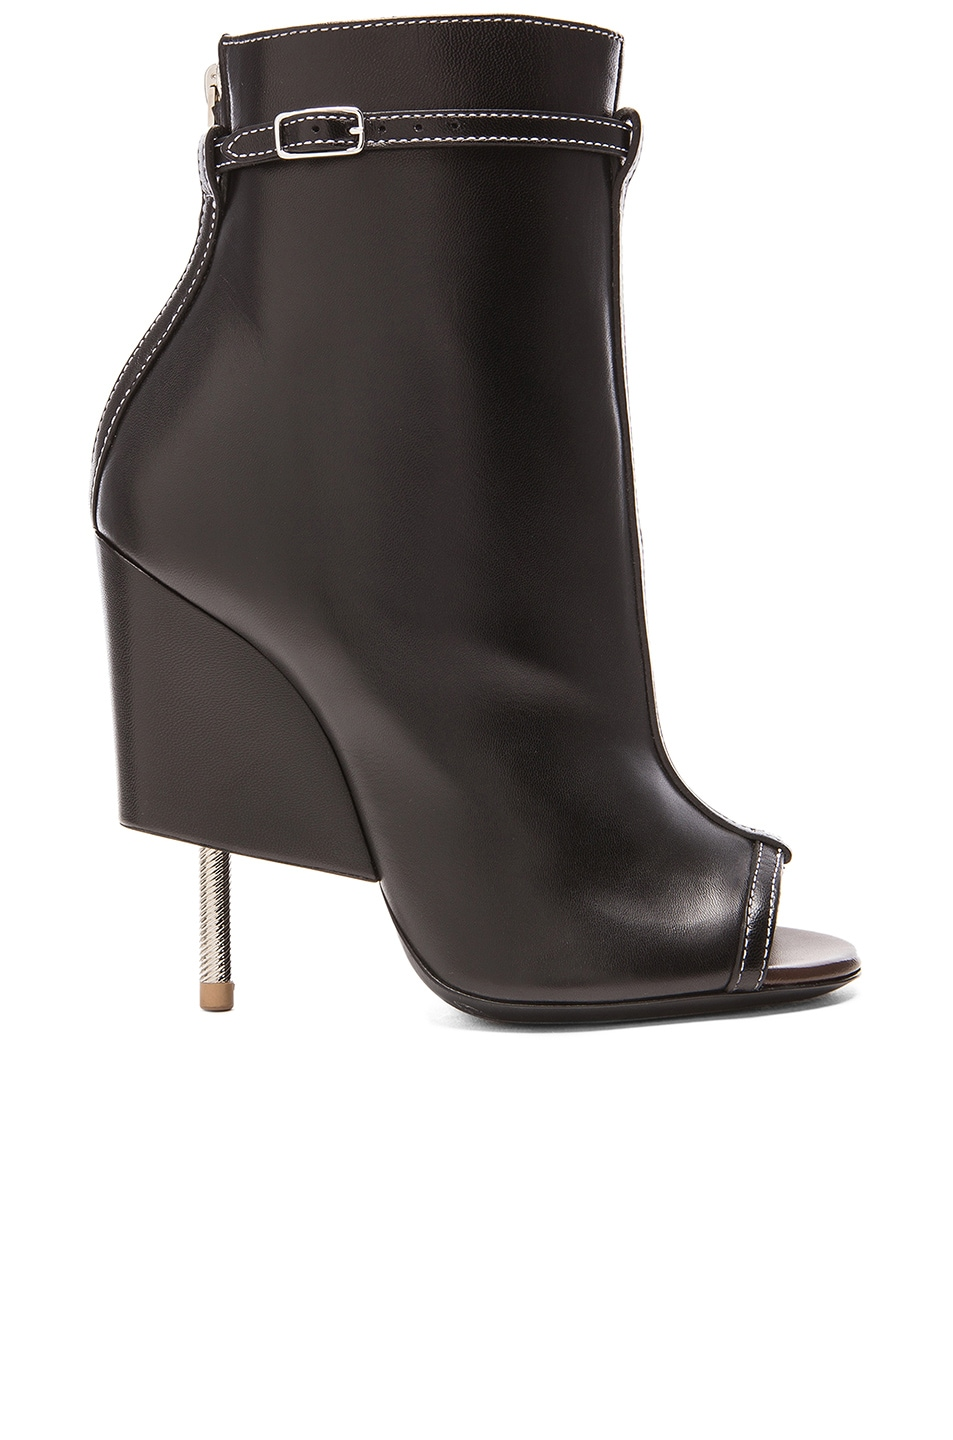 Image 1 of GIVENCHY Open Toe Runway Leather Booties in Black